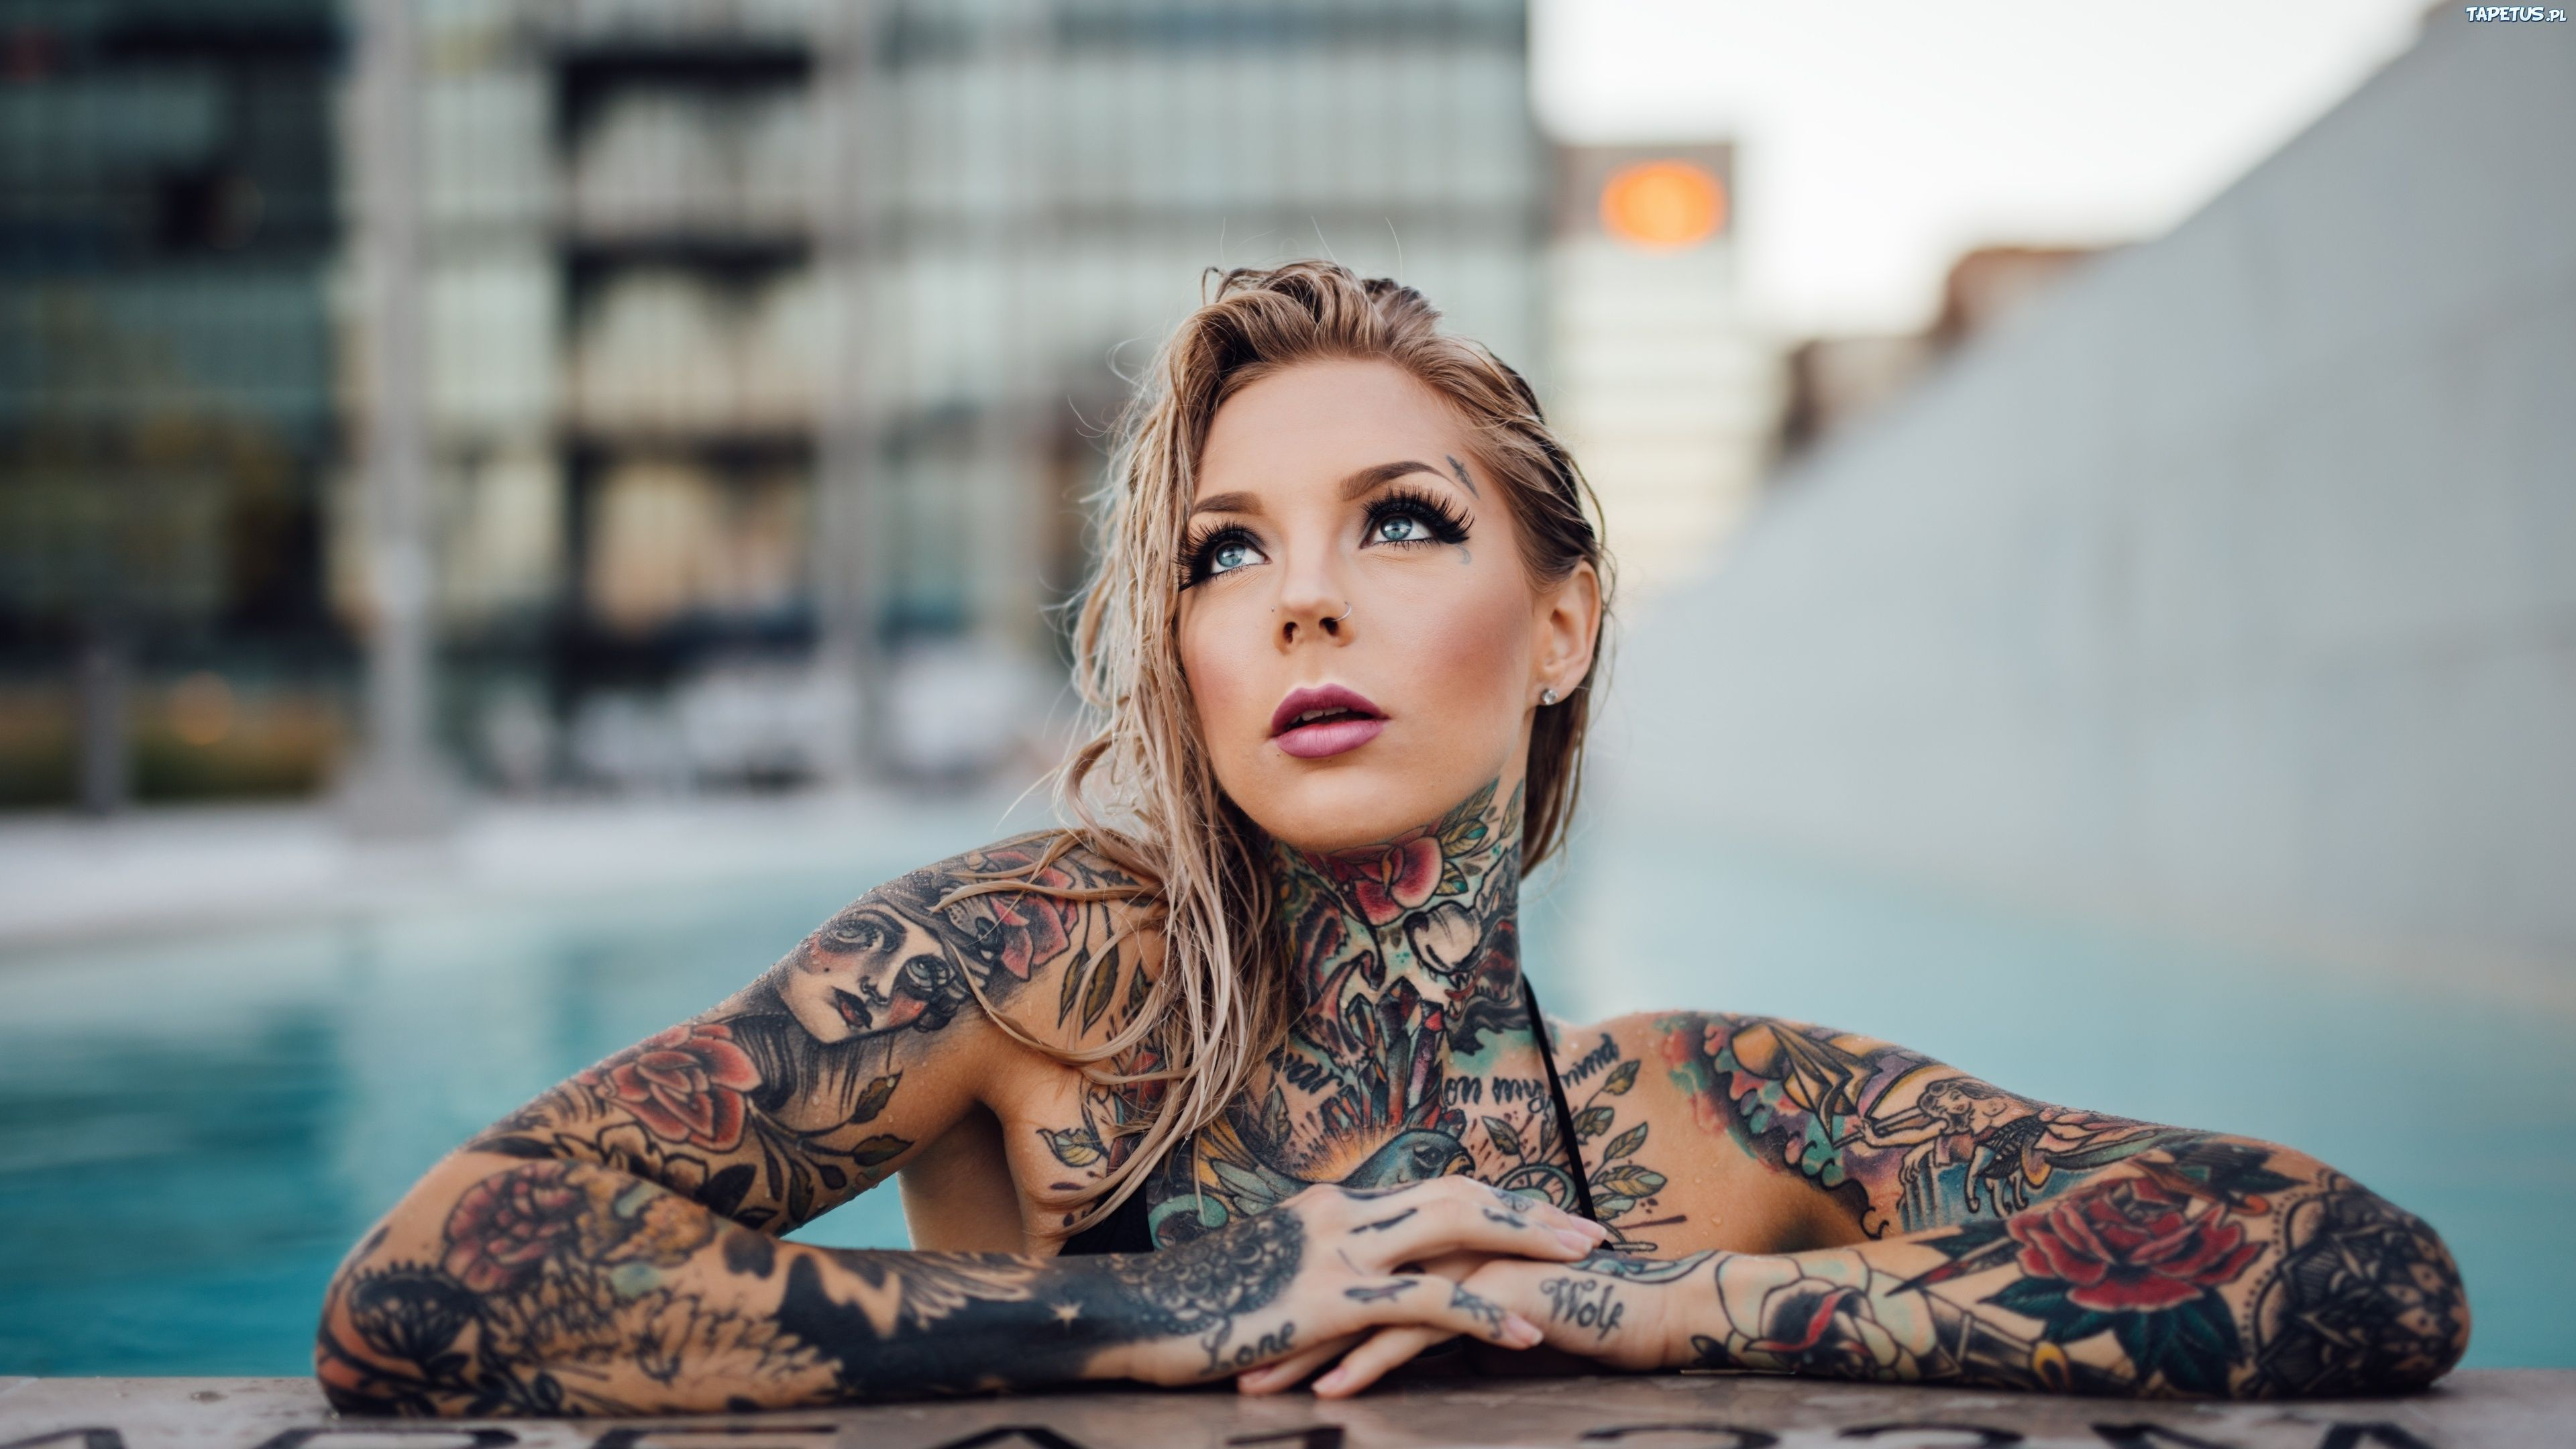 Tattoo Girl Desktop Wallpaper Tattooed Girl Wallpaper 4k 3840x2160 Download Hd Wallpaper Wallpapertip